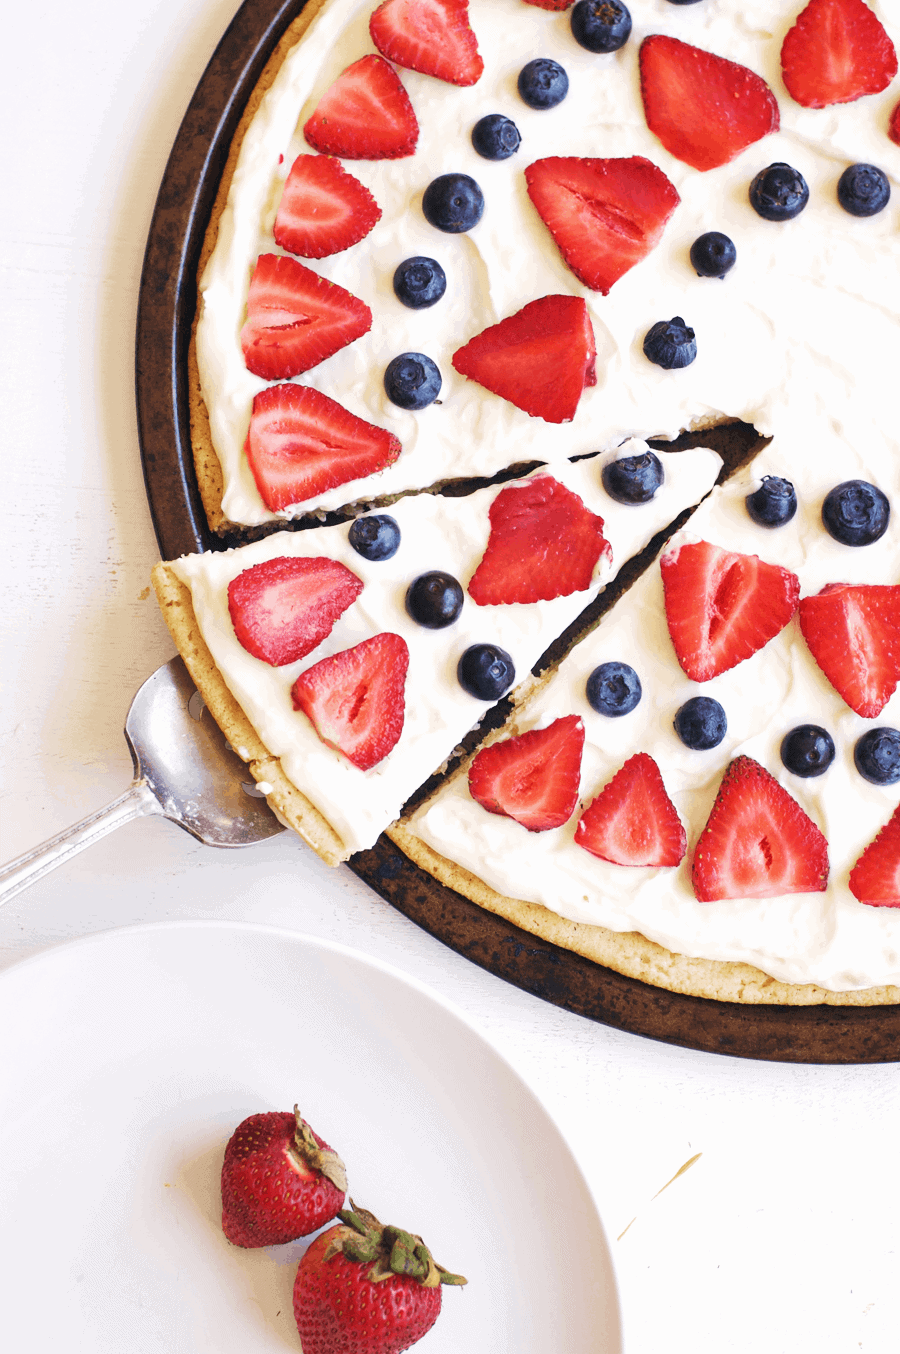 This 4th of July berry dessert pizza needs to be at the top of your list of festive foods to make! The combination of juicy, sweet berries and cream cheese icing spread on a sugar cookie crust is absolutely delicious. You'll definitely be going back for seconds, maybe even thirds! || The Butter Half #easydessert #fruitpizza #summerrecipes #thebutterhalf